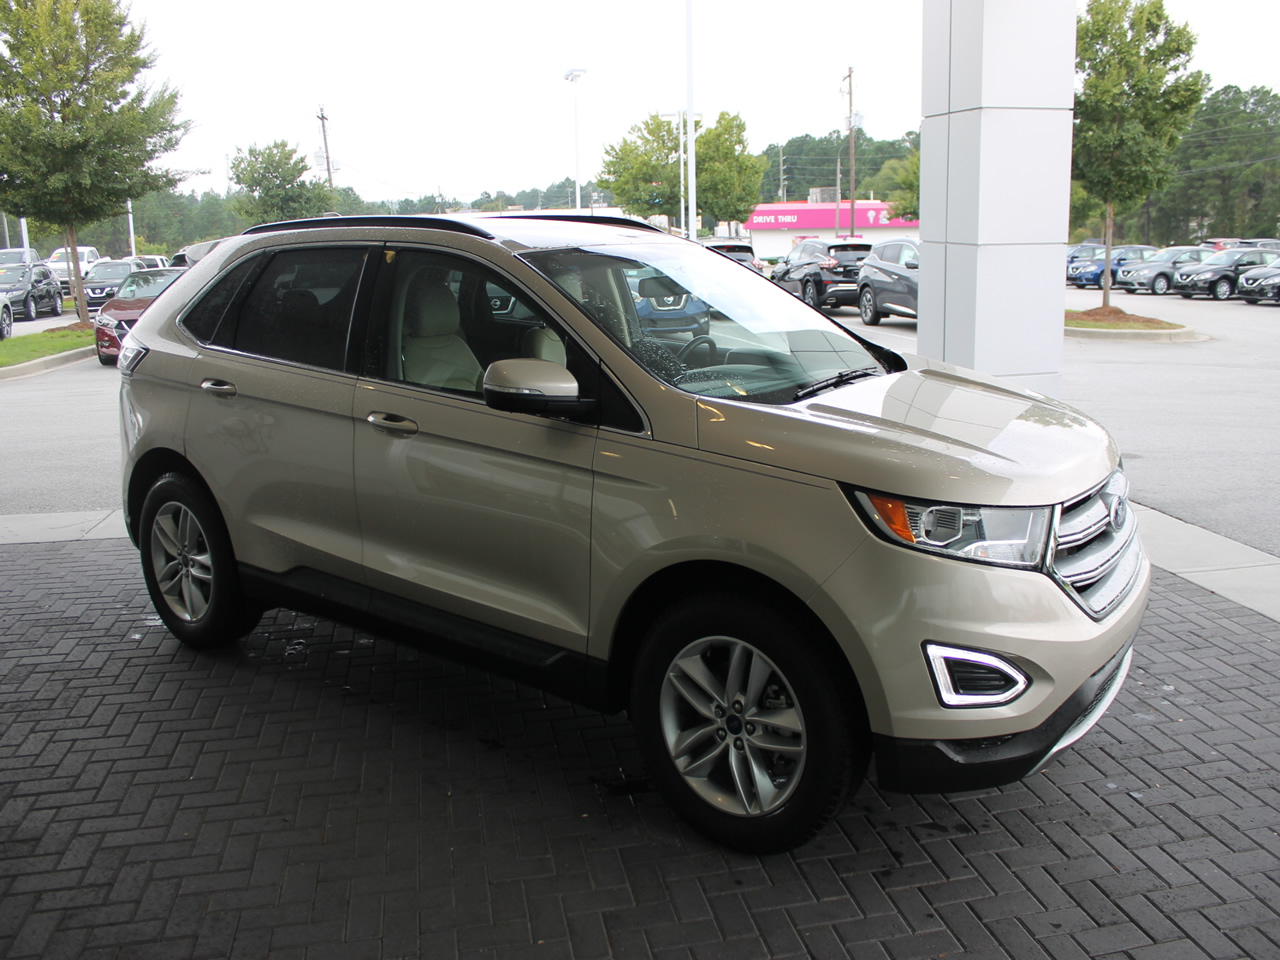 2017 FORD EDGE SEL Dick Smith Ford serving Columbia, Sumter, Orangeburg, West Columbia, Lexington, Newberry, Lugoff SC, Selling new Ford cars and trucks and used vehciles in Columbia, SC